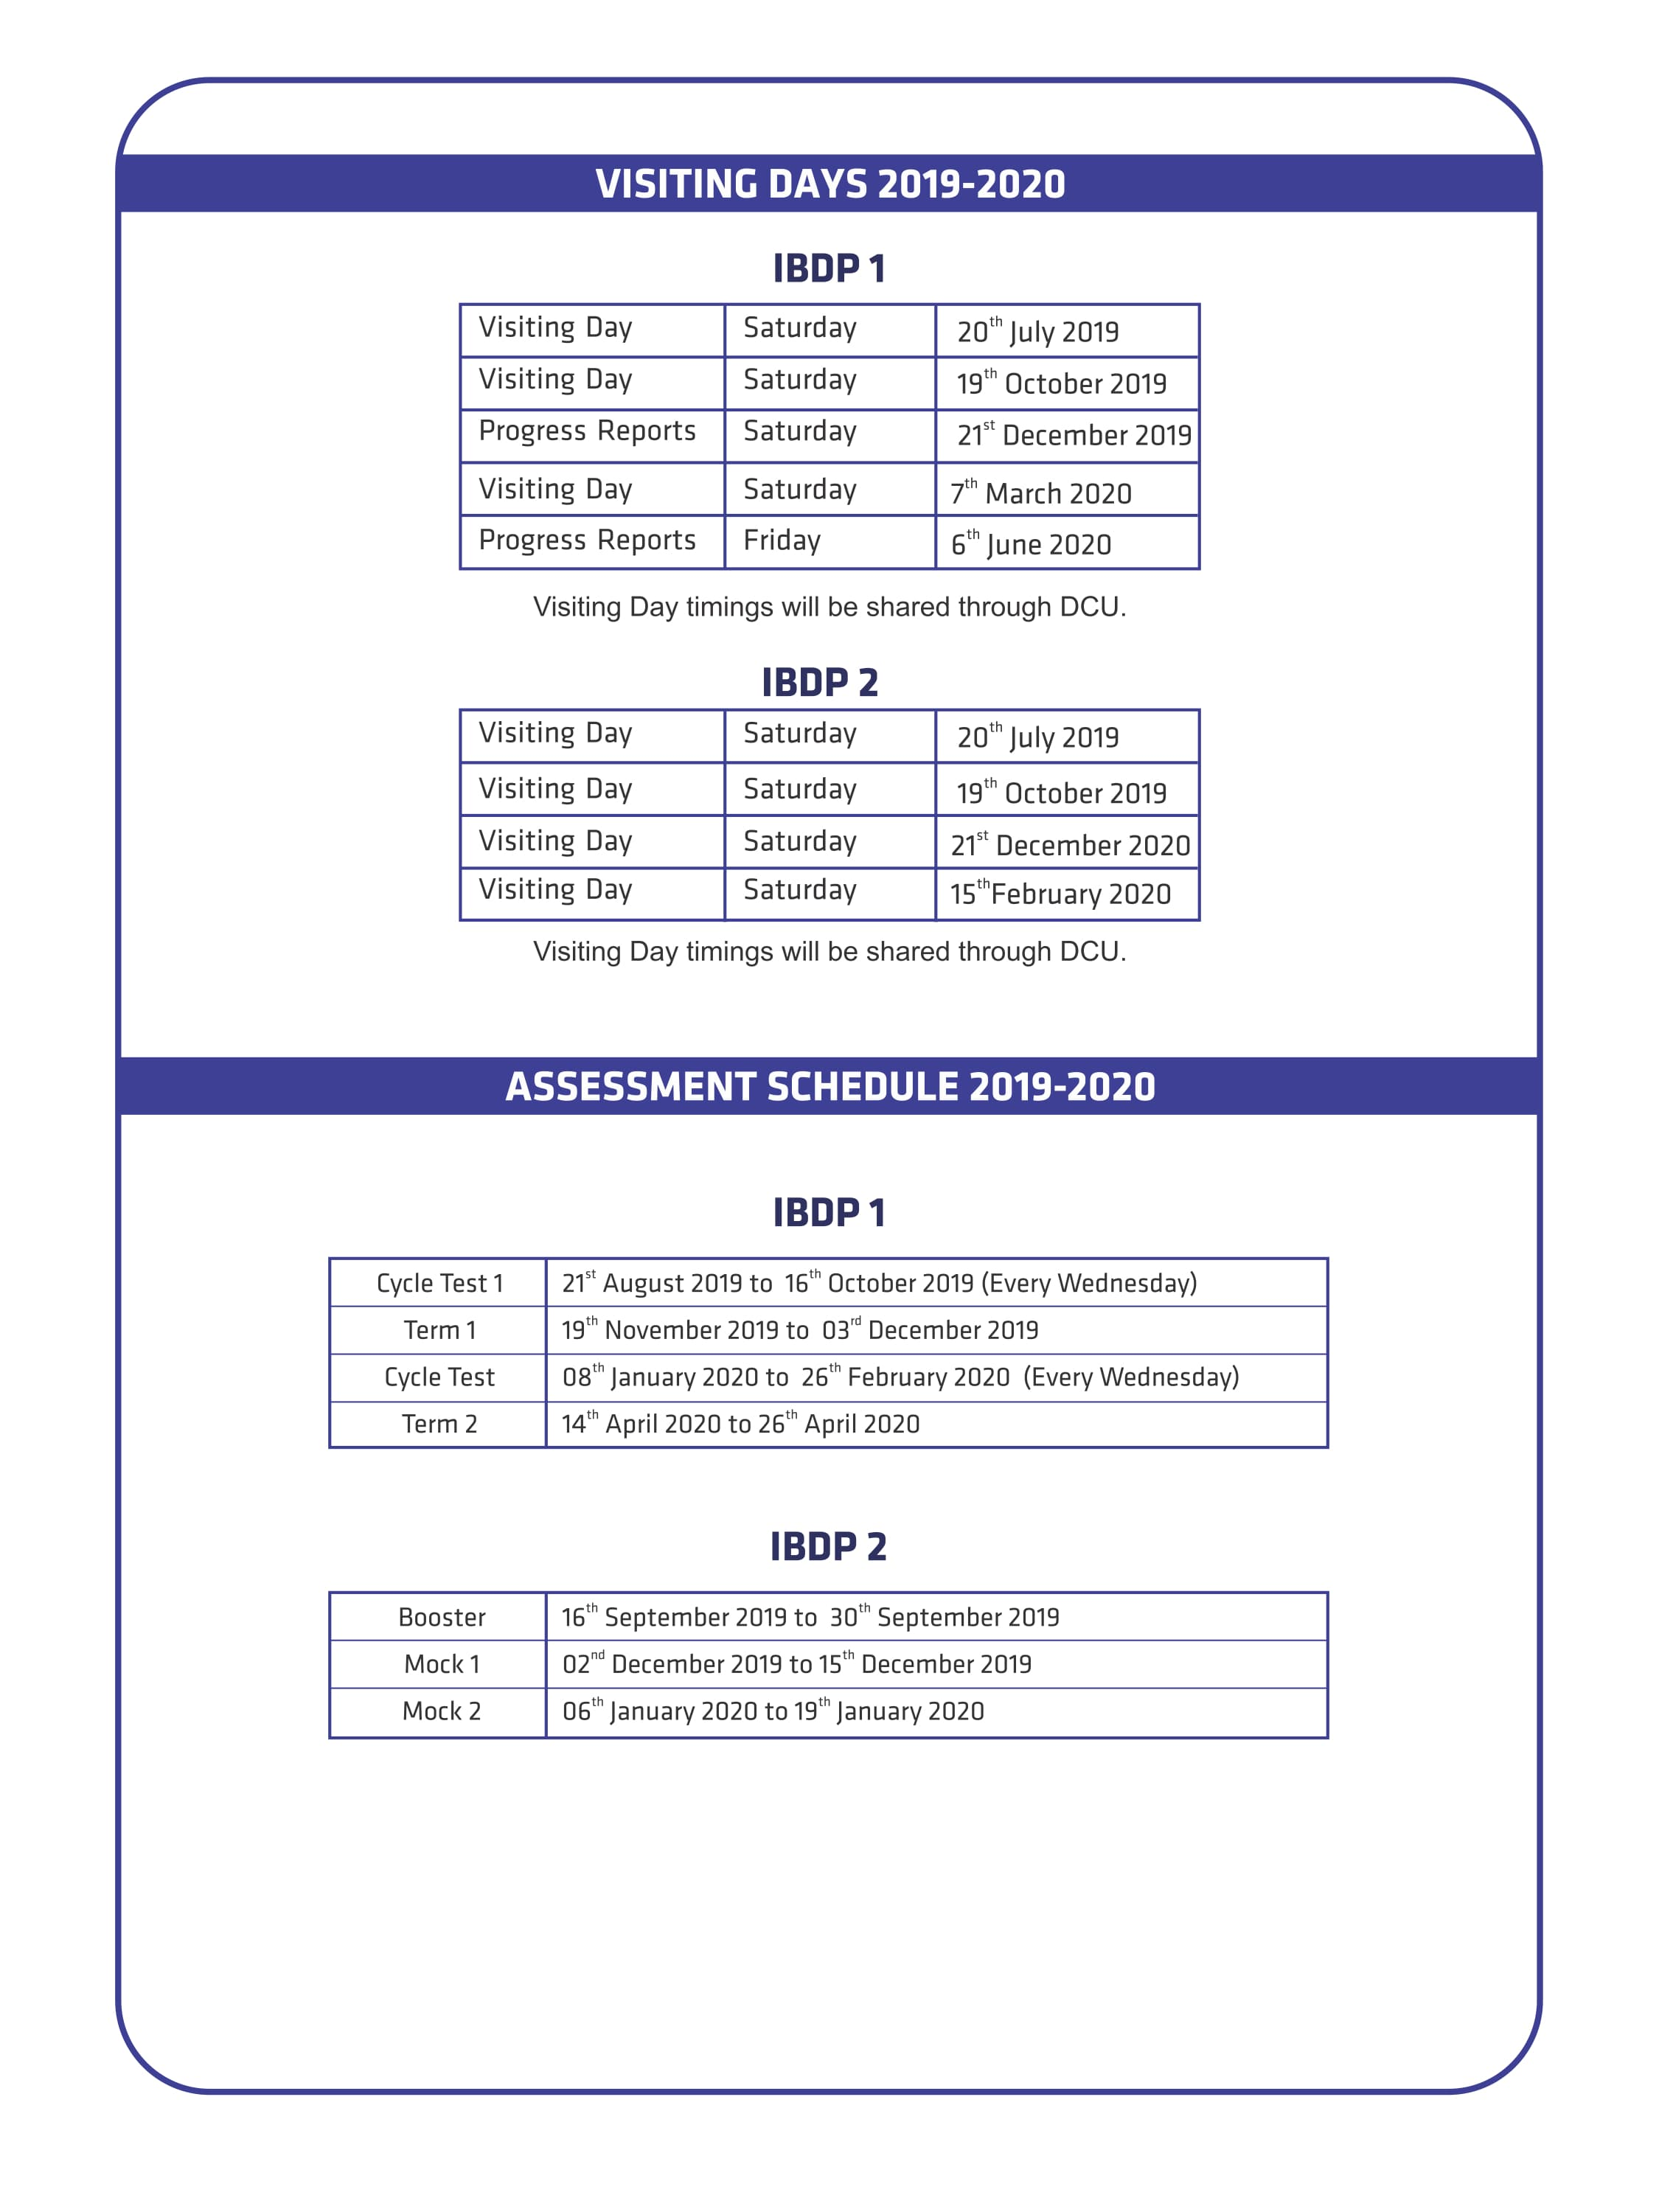 IBDP Assessment Schedule & Visiting Days